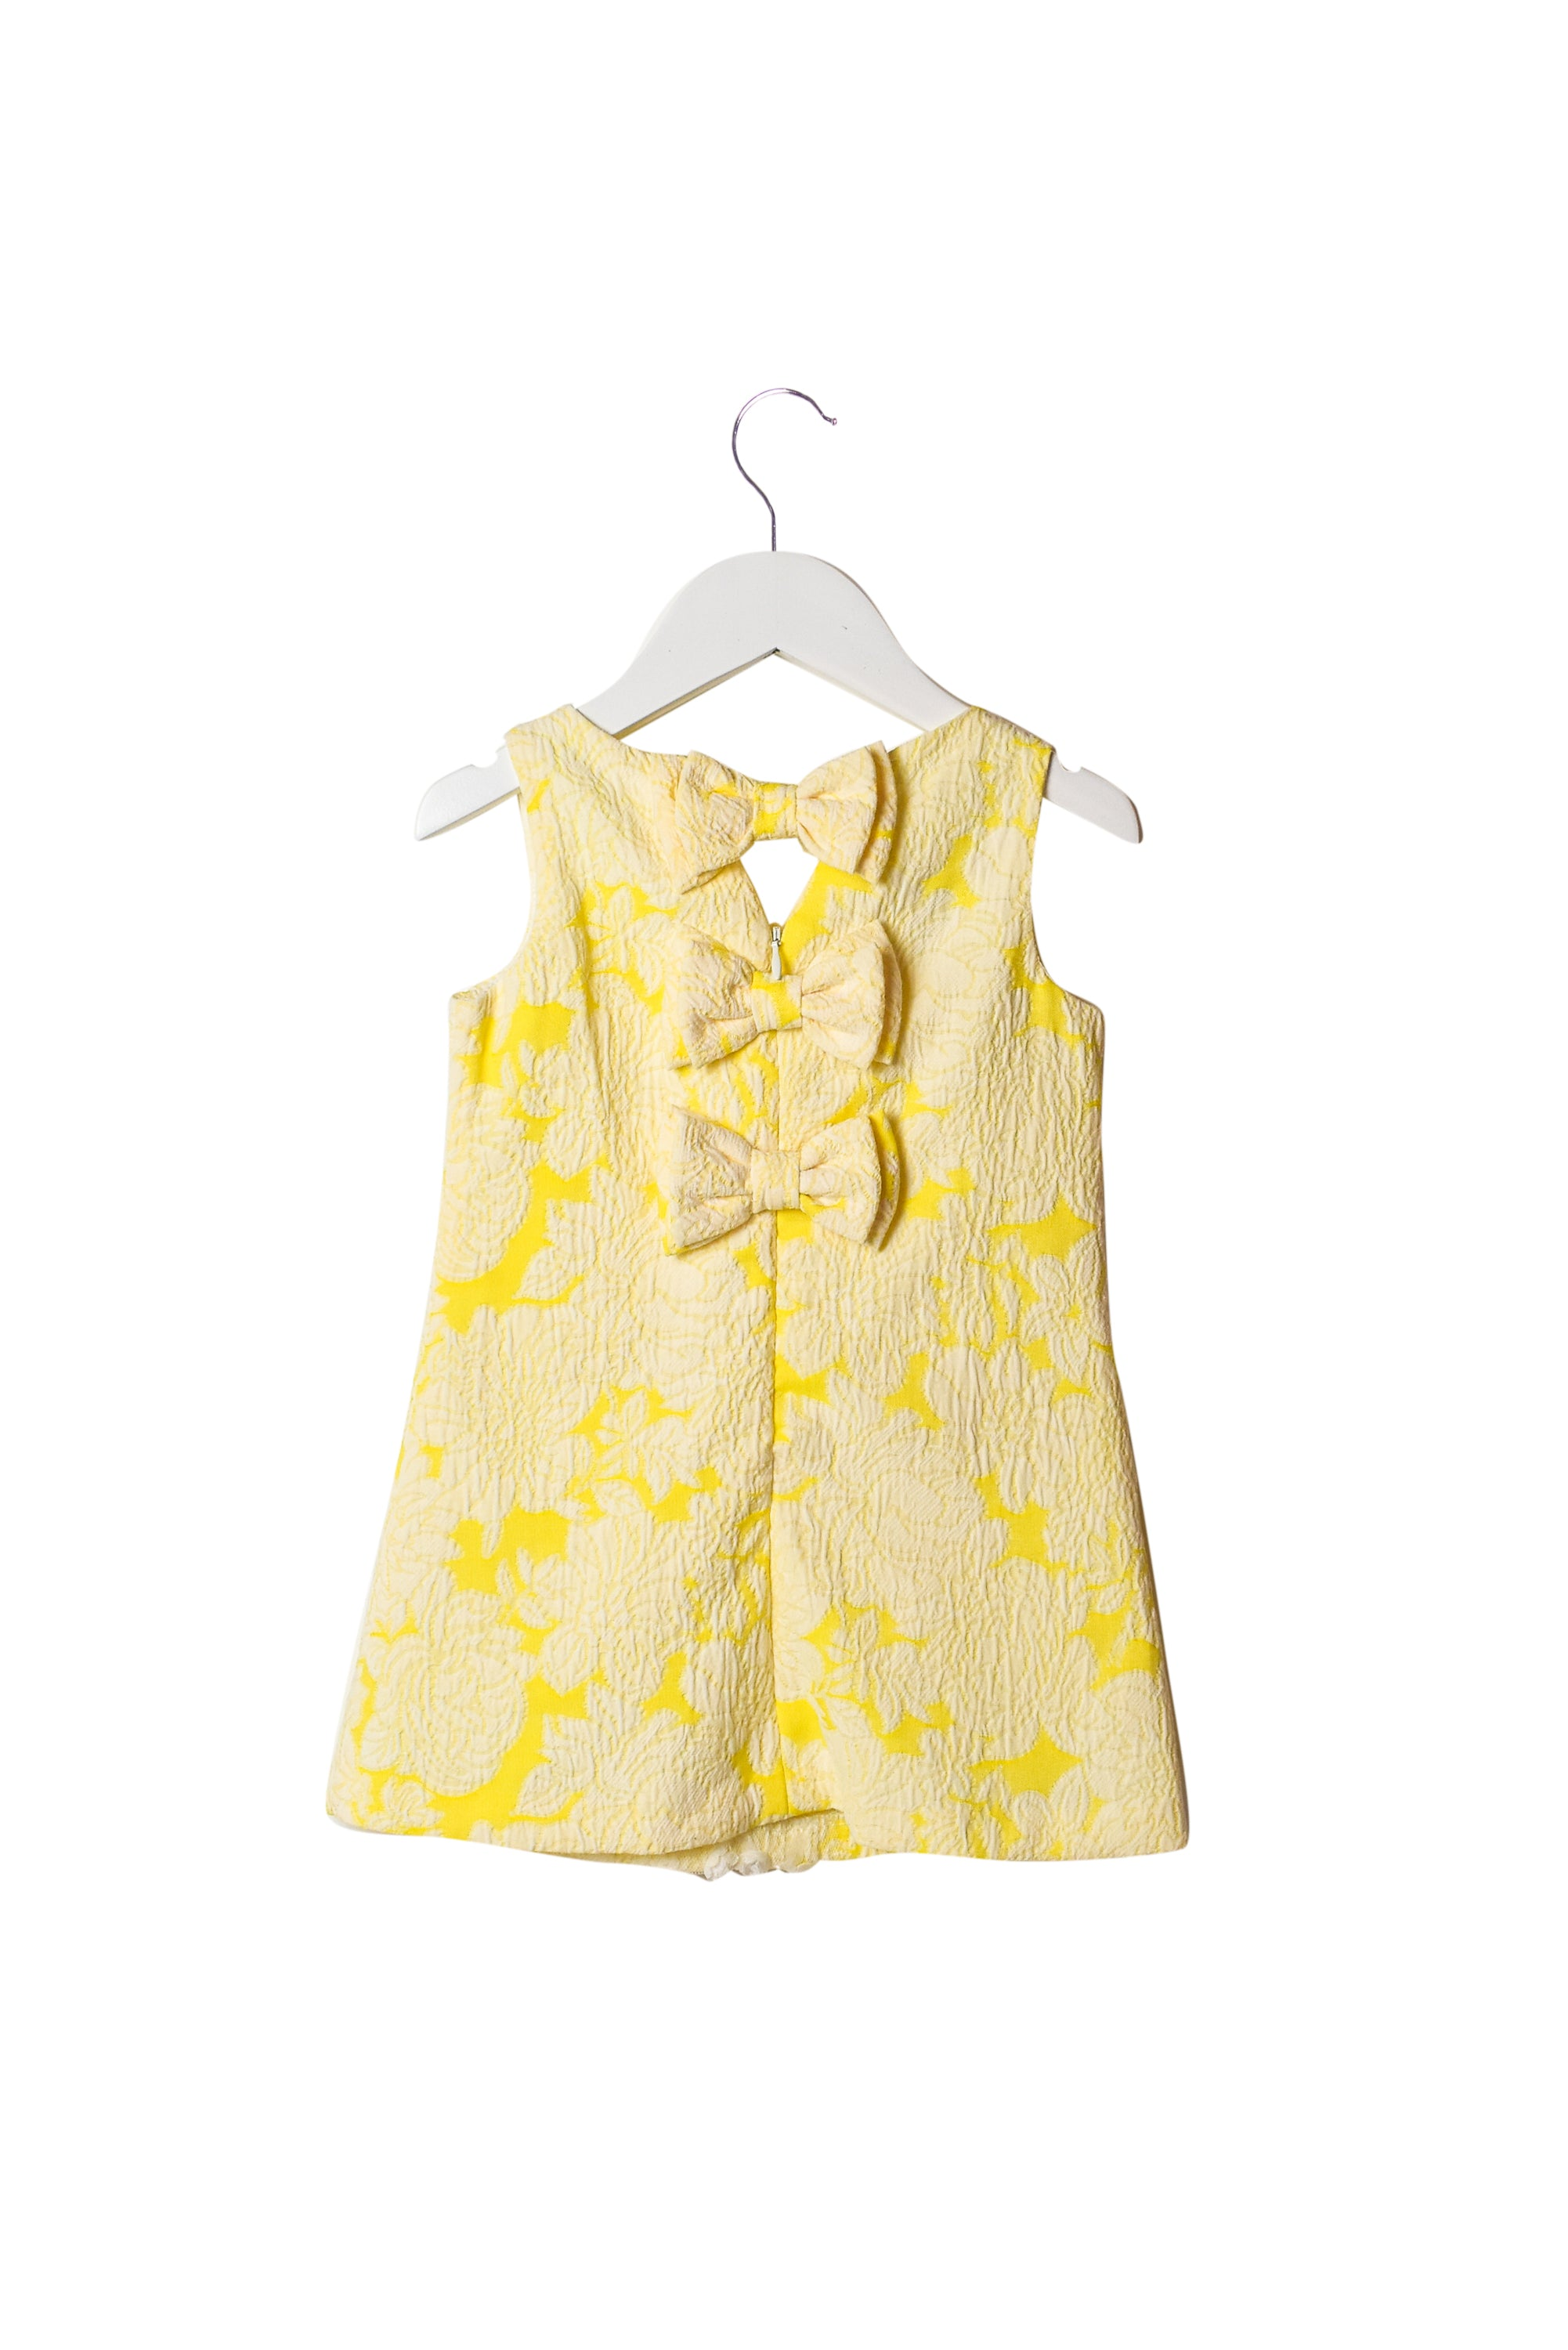 10007183 Iris & Ivy Kids~ Dress 2T at Retykle